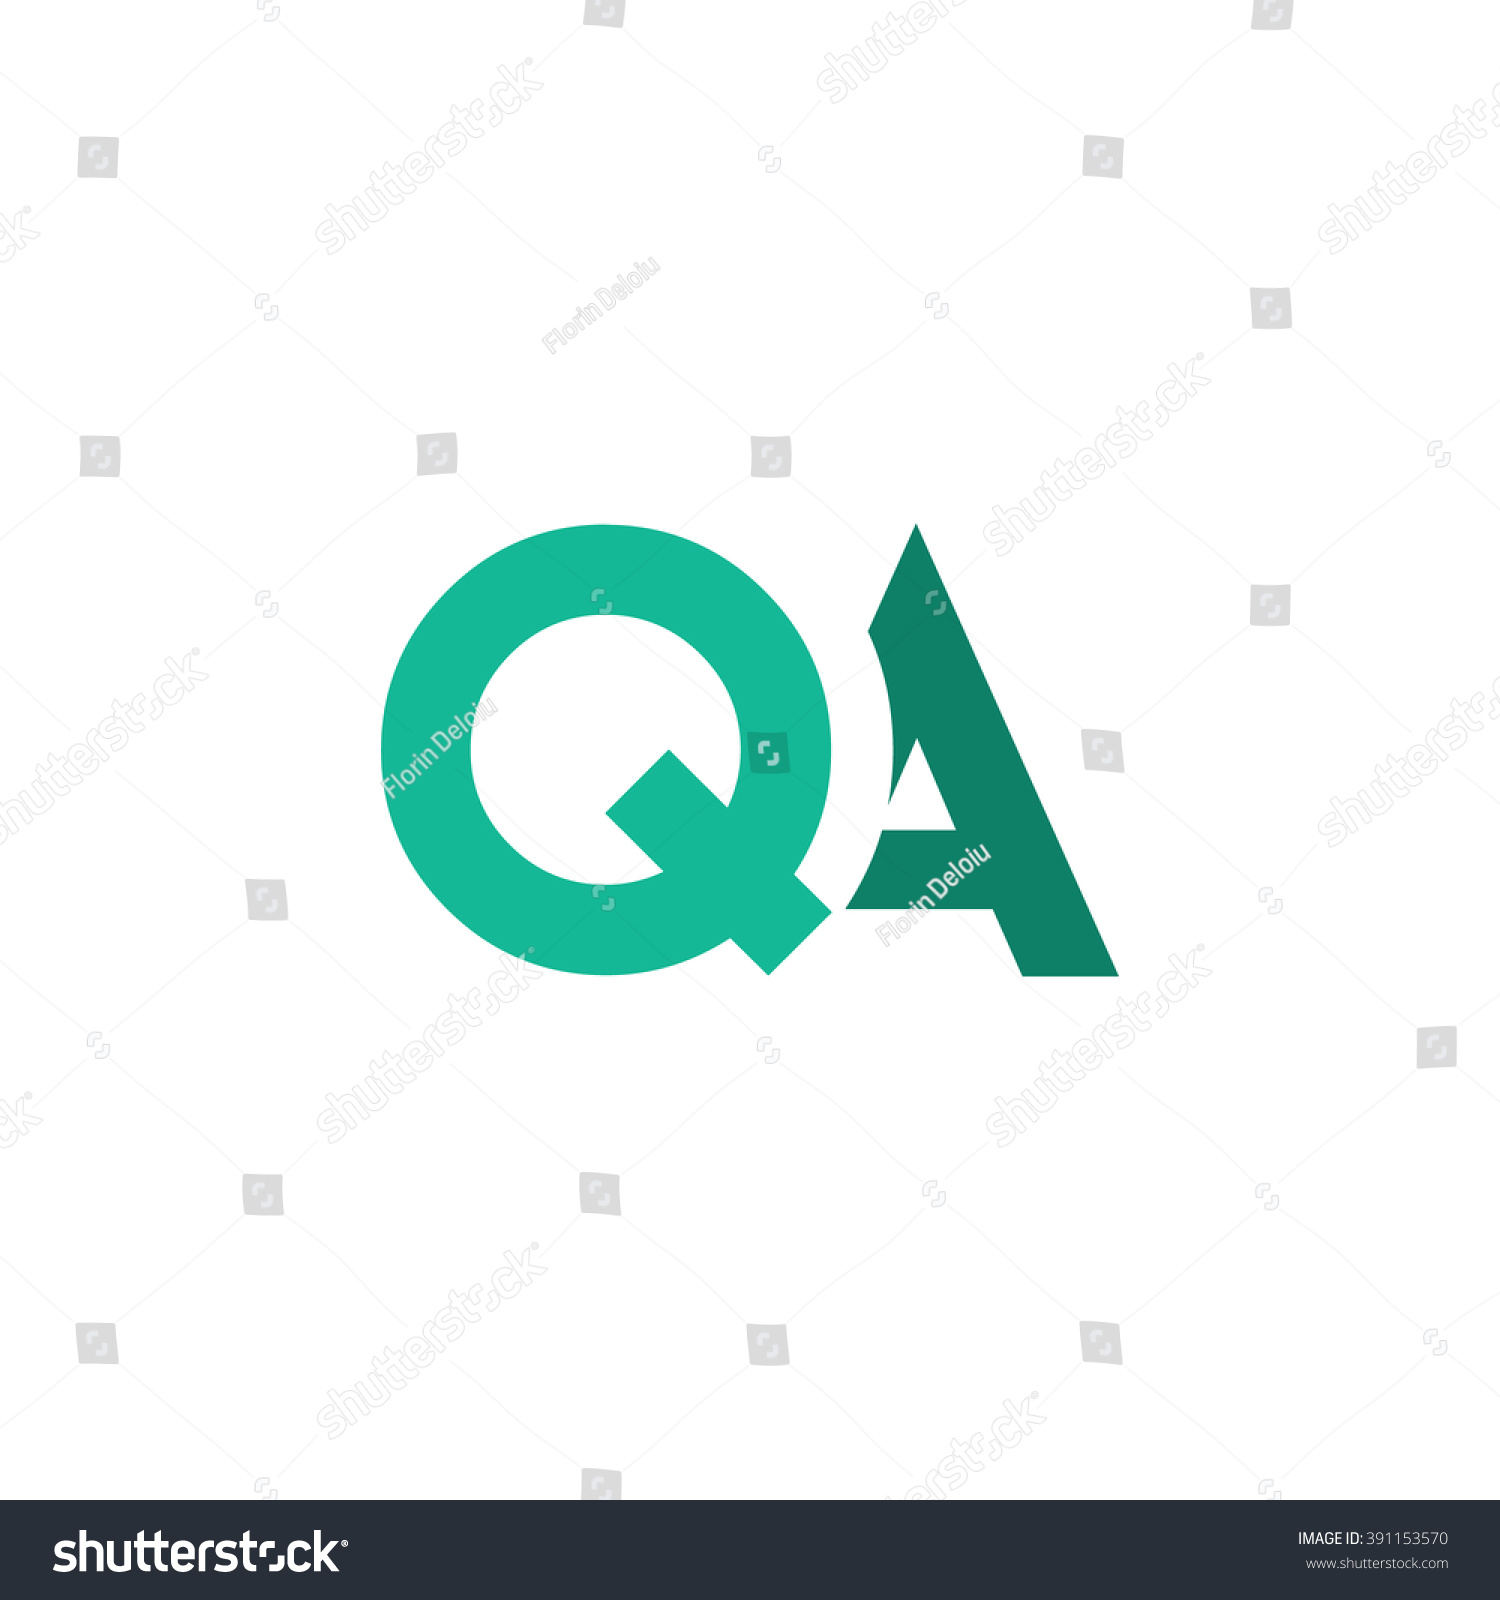 qa logo stock vector royalty free 391153570 shutterstock